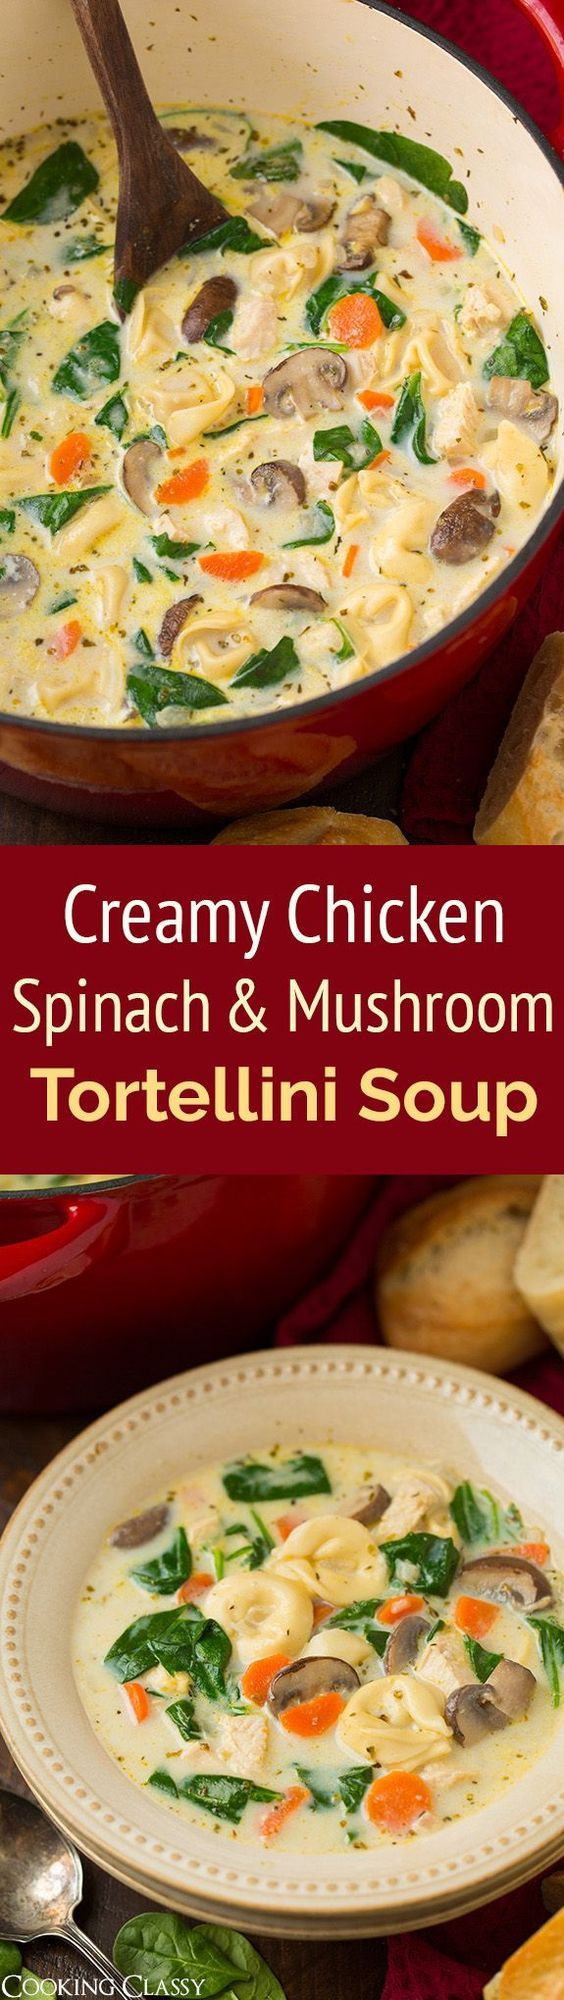 Creamy Chicken Spinach and Mushroom Tortellini Soup - this hearty comforting soup does not disappoint! Definitely a recipe worthy of your dinner rotation!